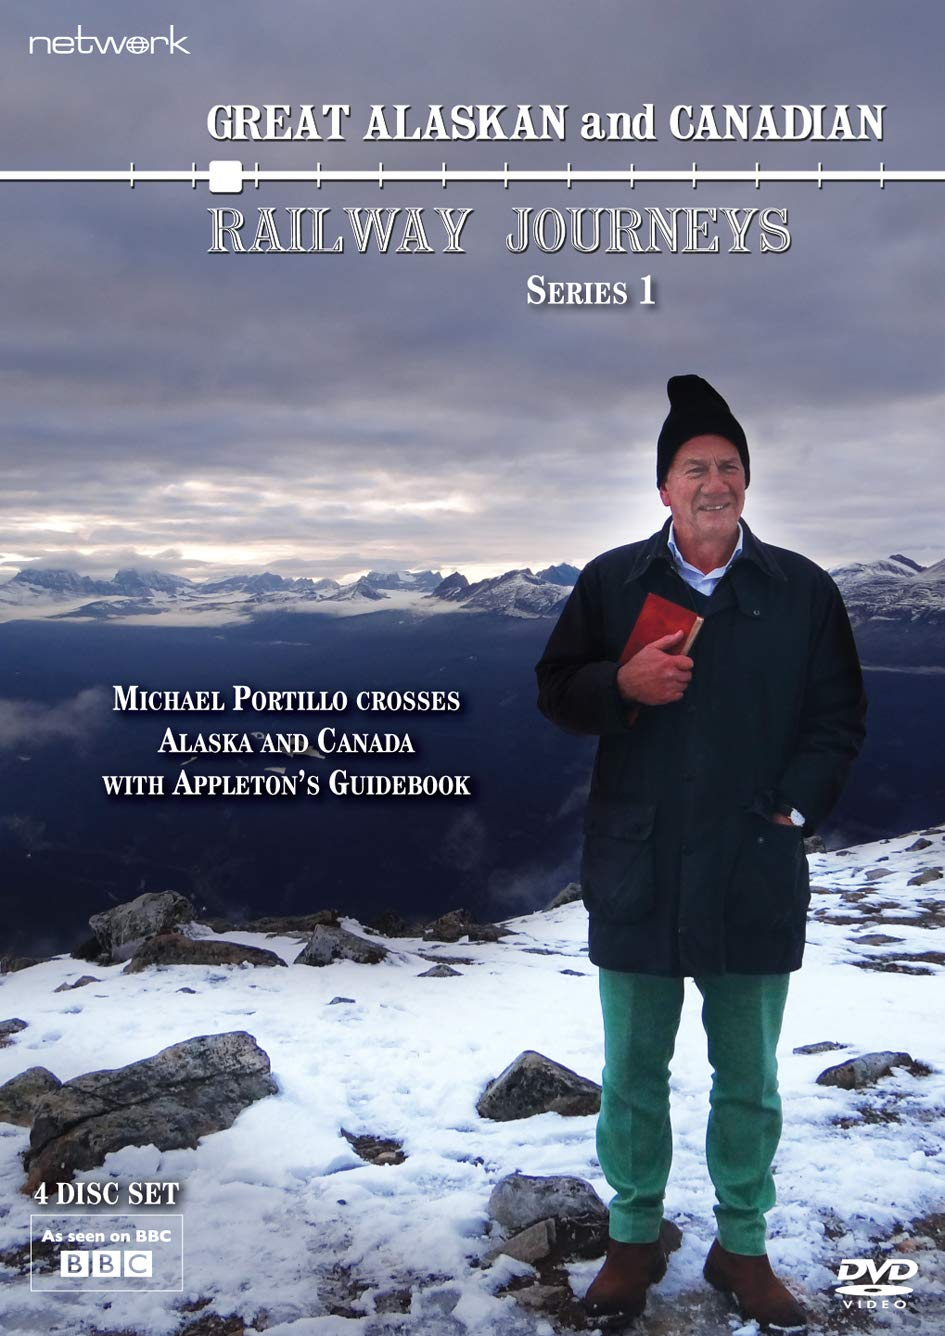 Great Alaskan and Canadian Railway Journeys: Series 1